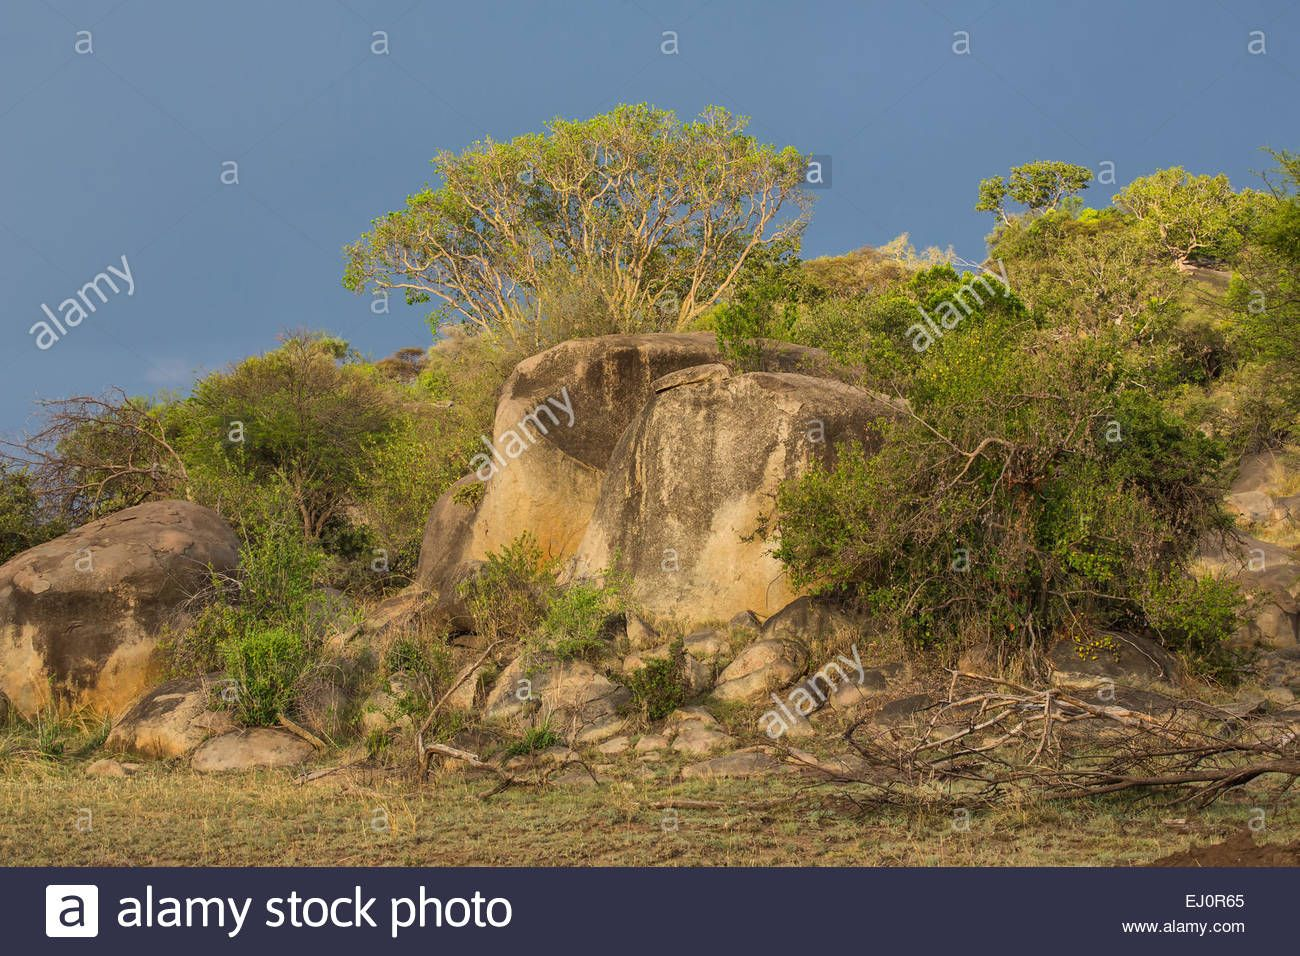 africa-mountains-rocks-cliffs-scenery-landscape-travel-savanna-serengeti-EJ0R65.jpg (1300×956)